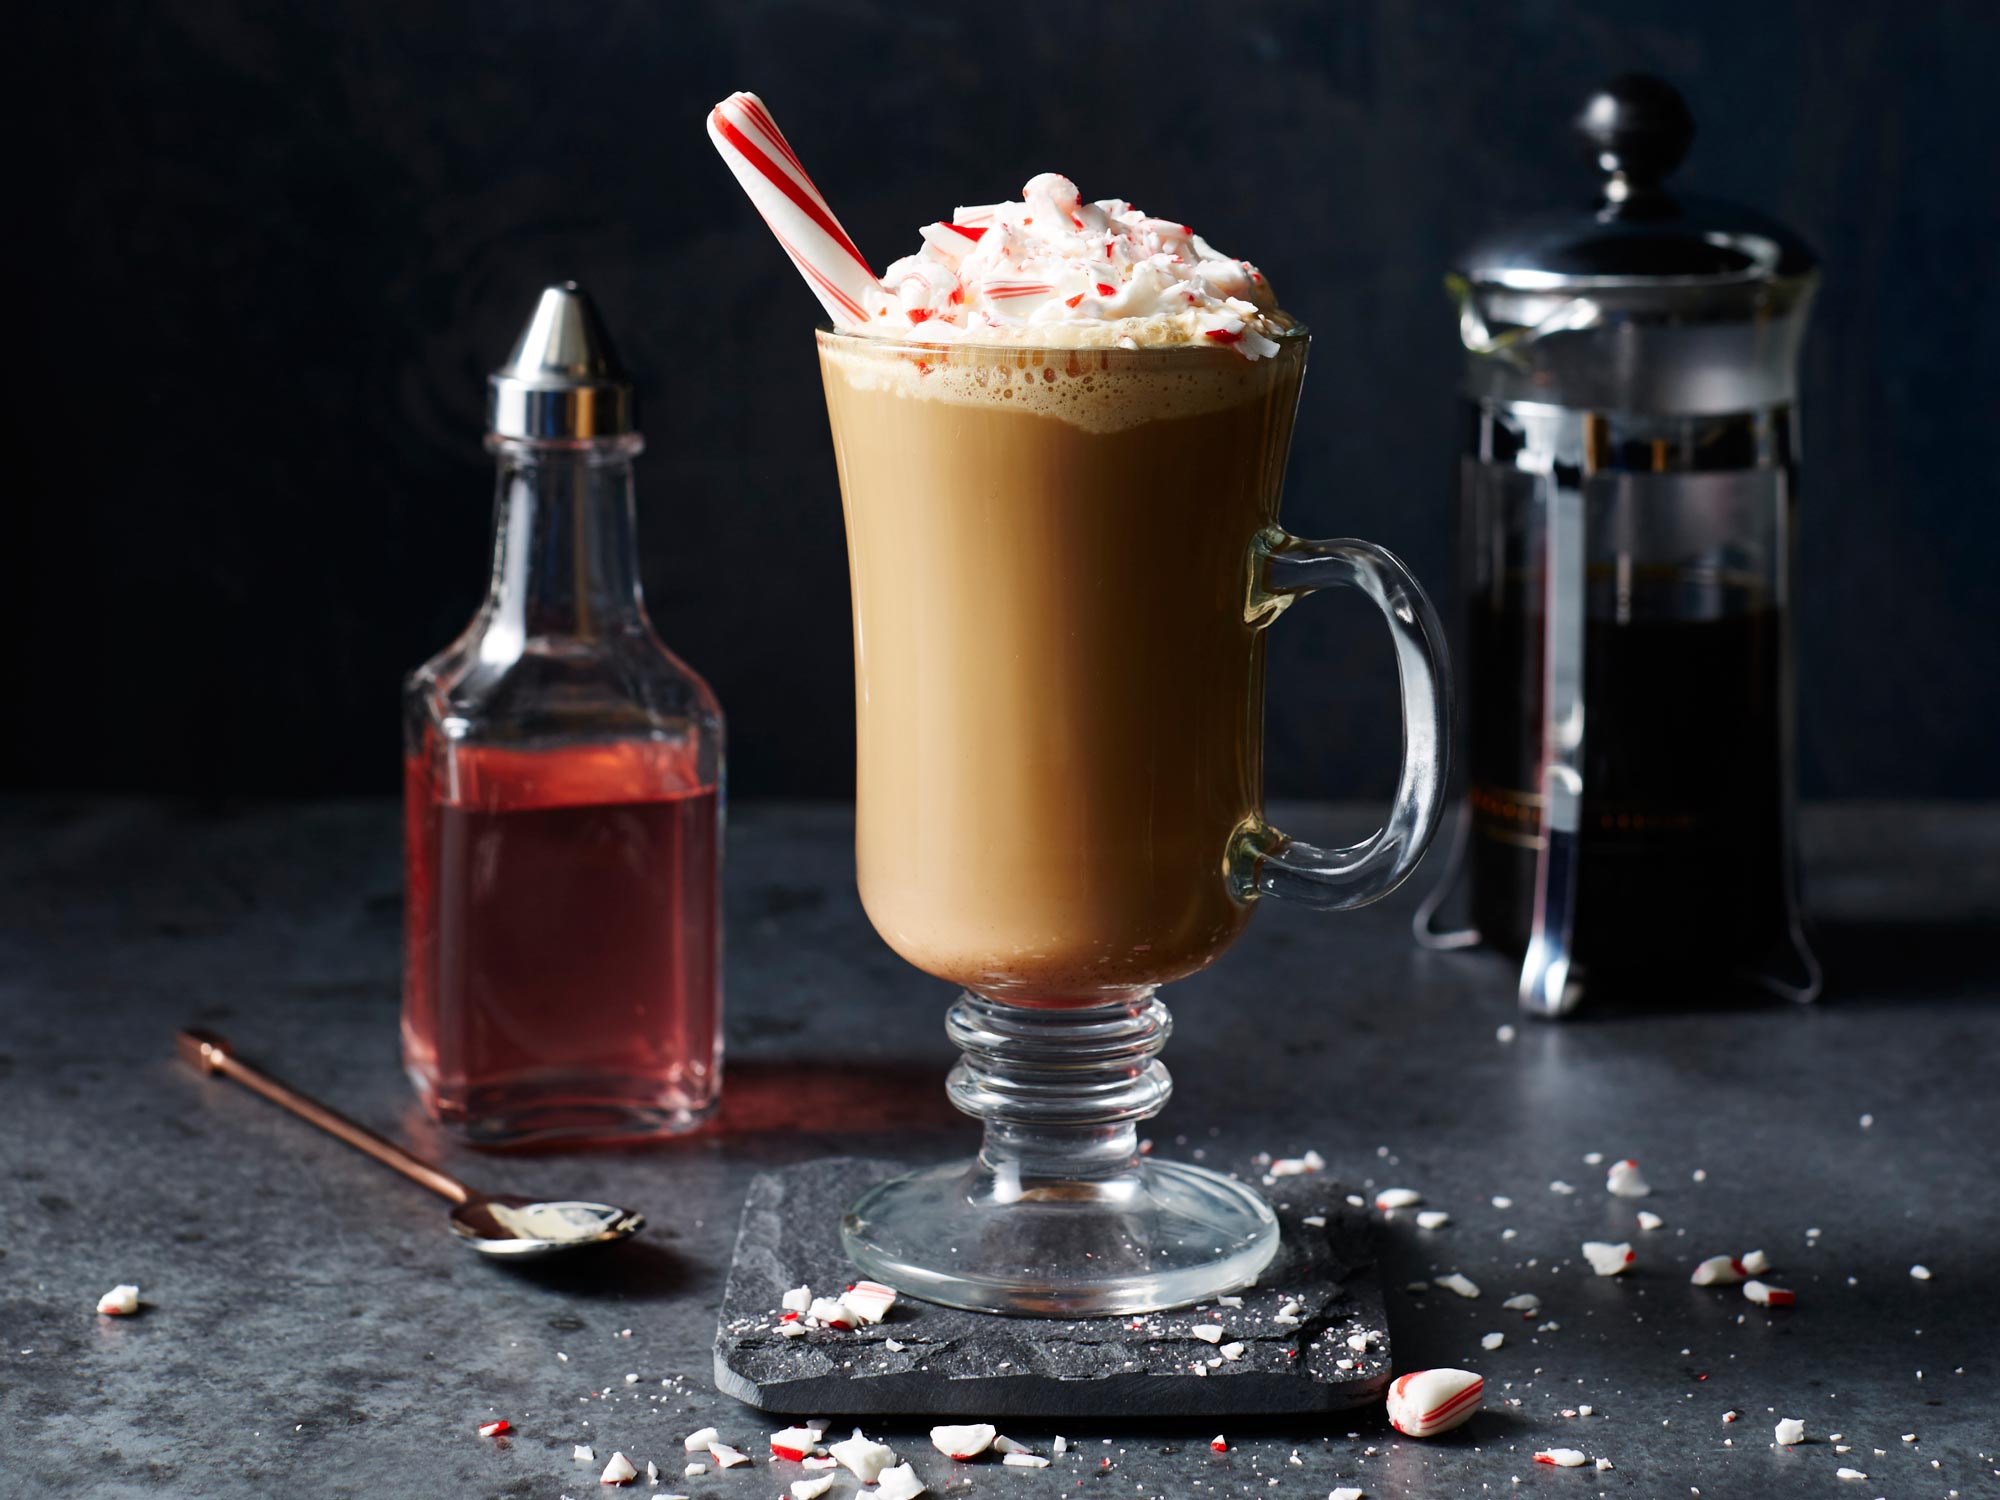 How to Make Your Own Signature Holiday Lattes that are Better Than the Starbucks Originals